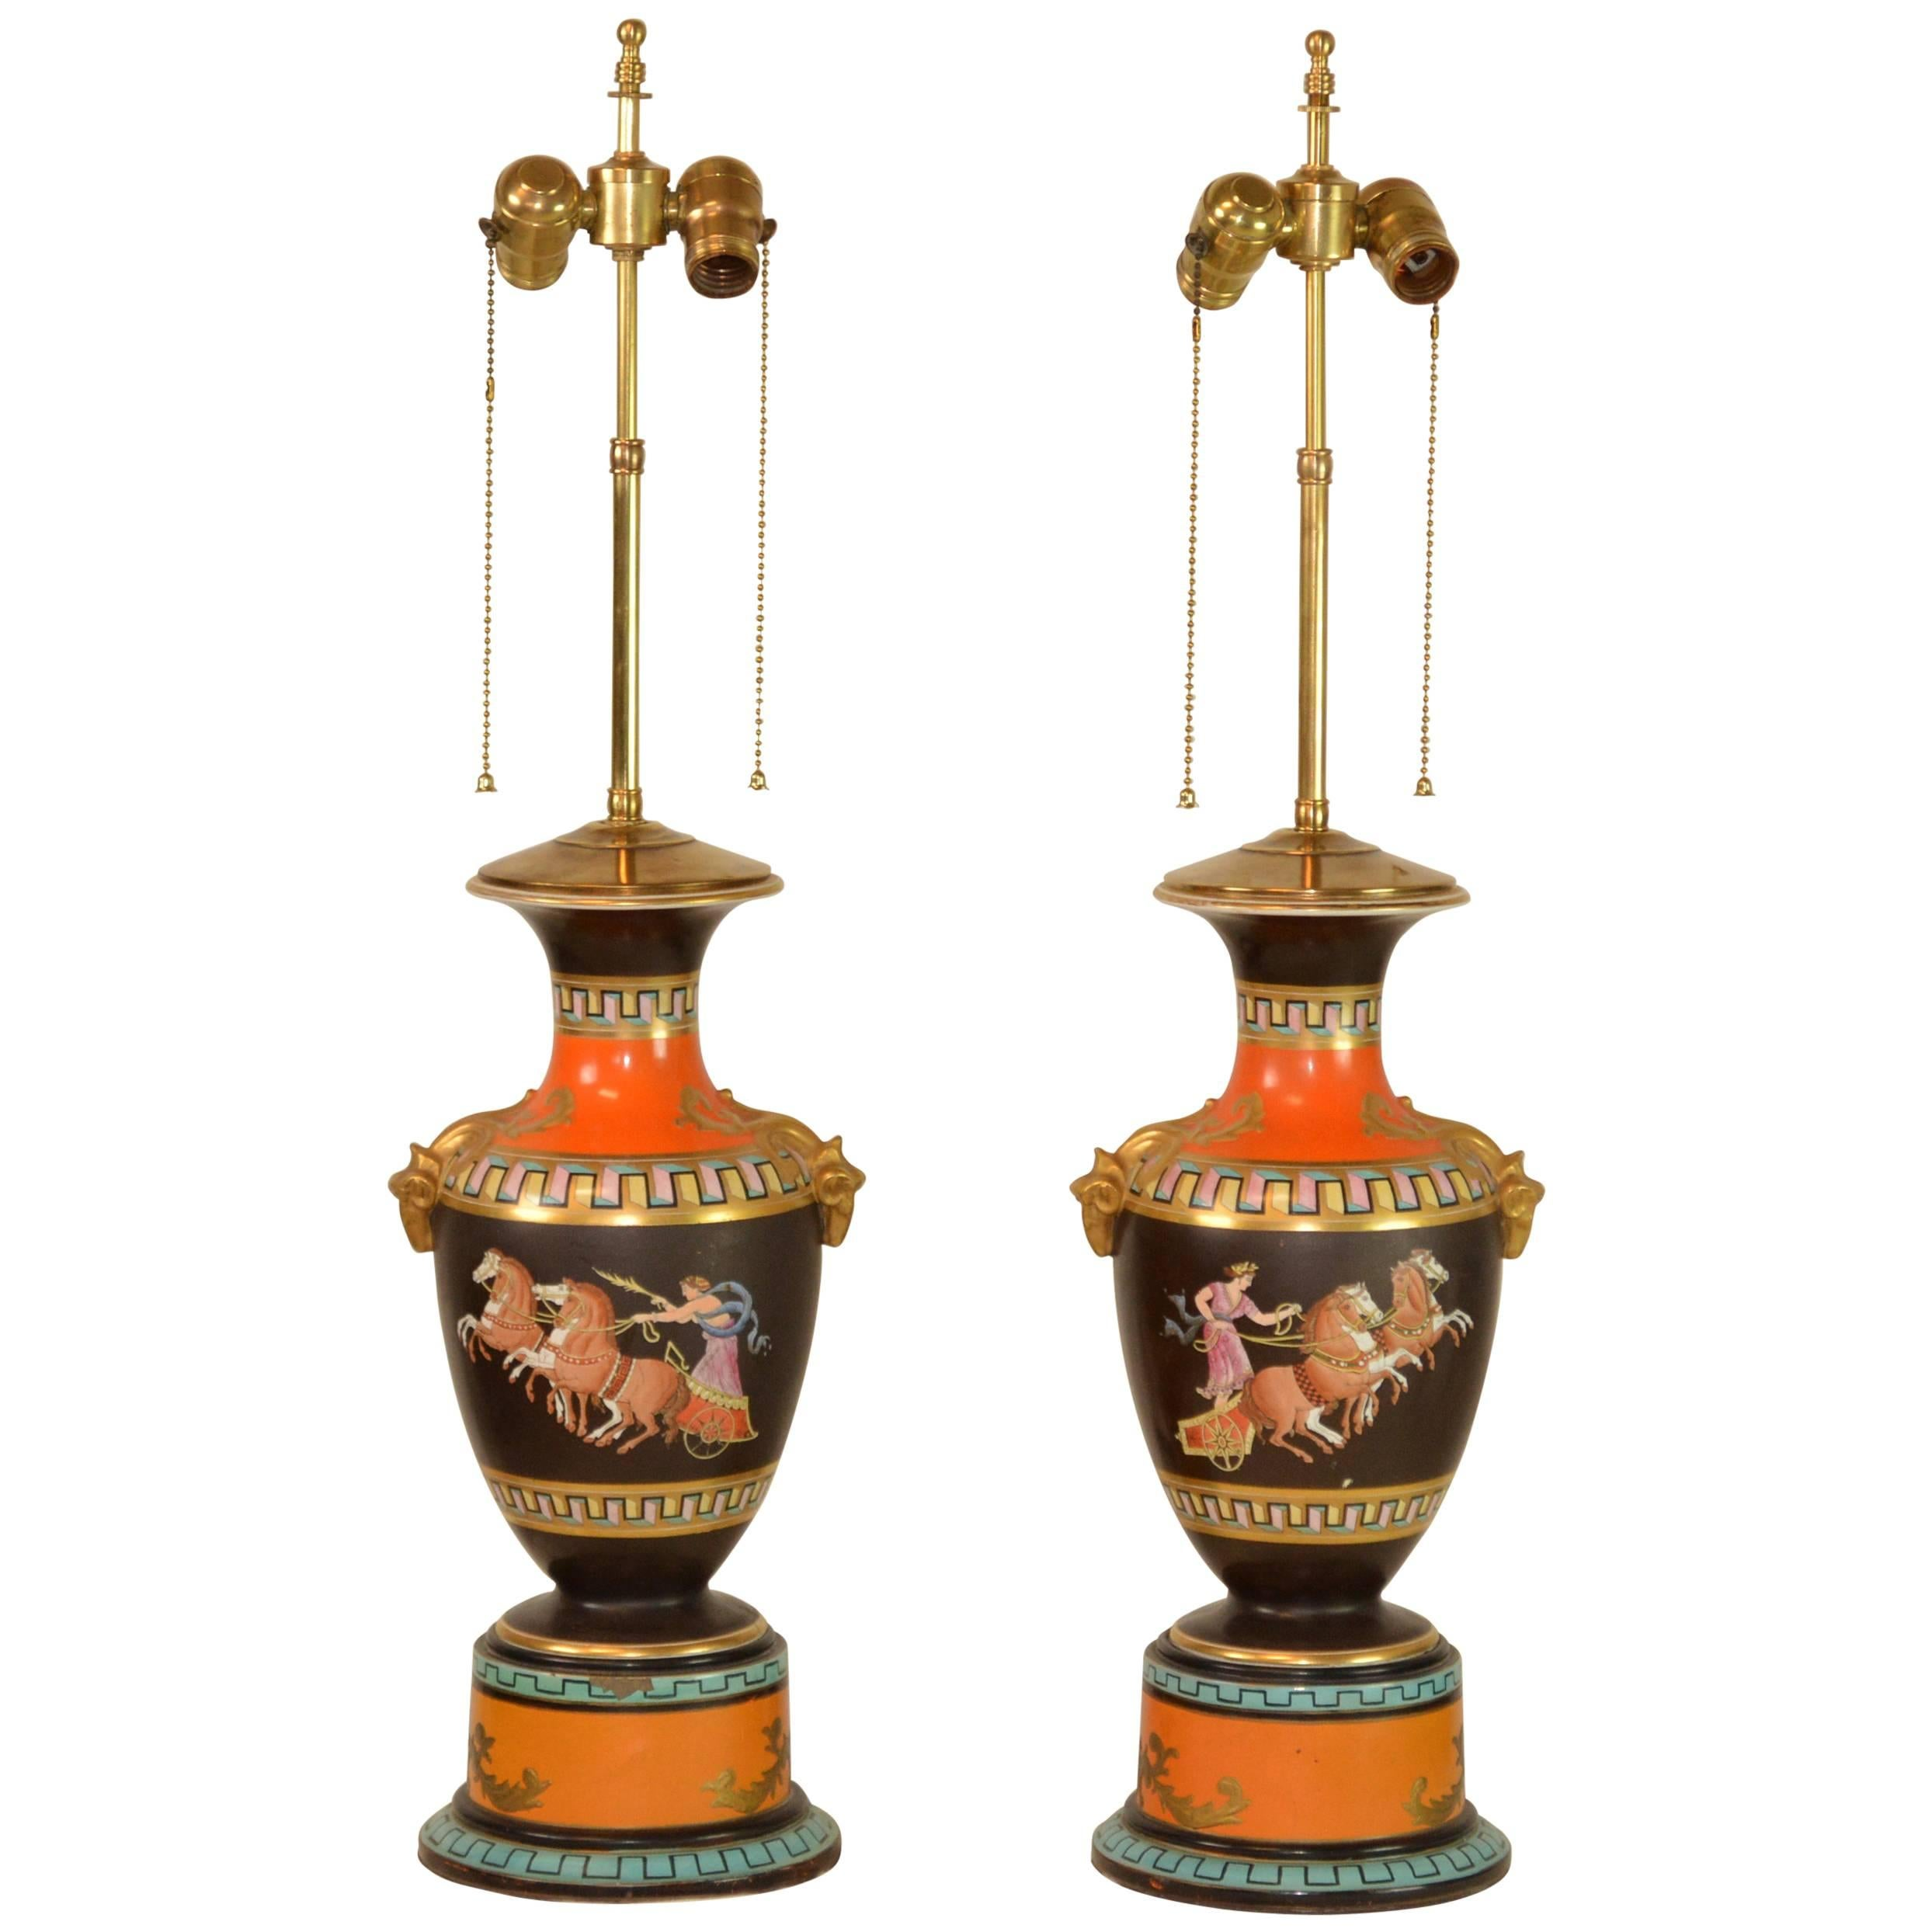 Pair of Greek Revival French Urns Mounted as Lamps